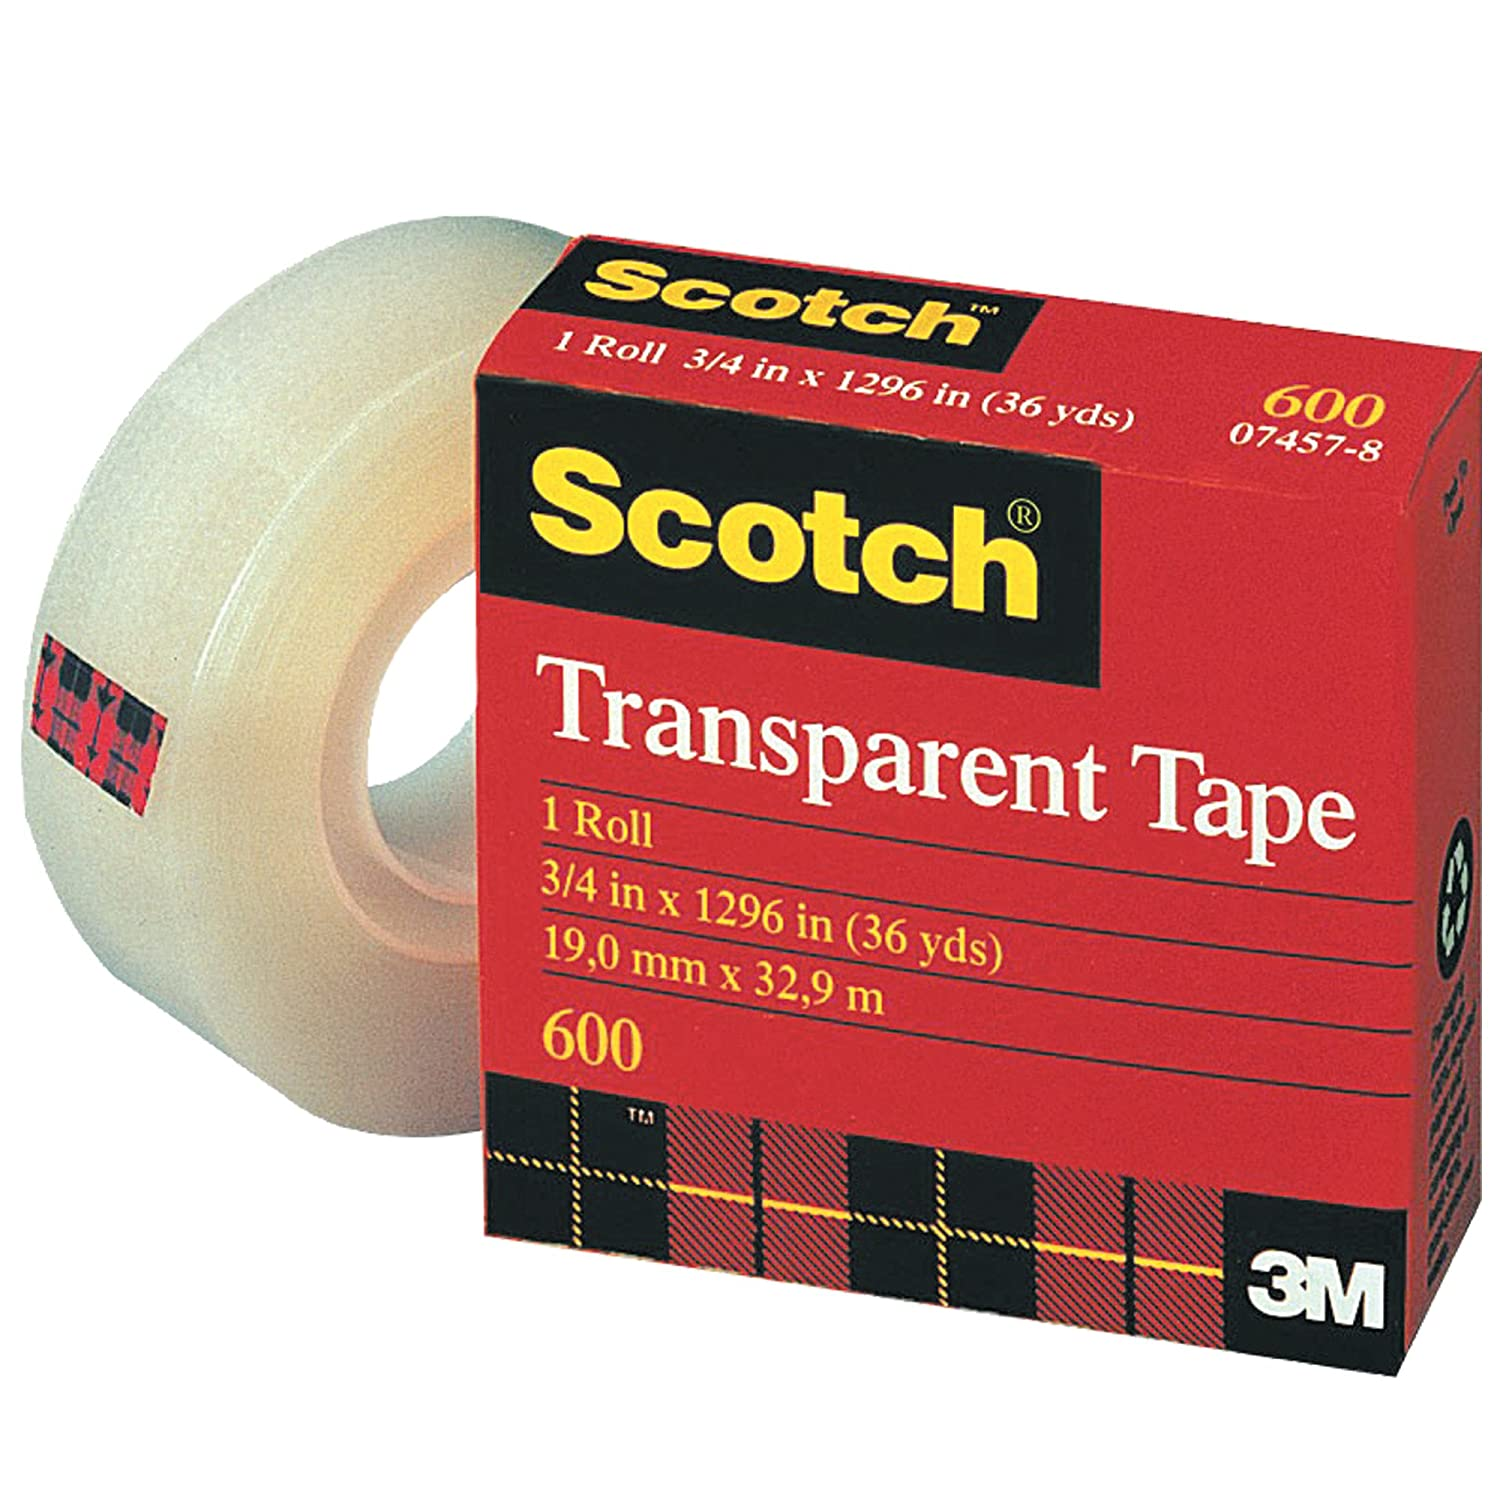 Scotch 600 Multitask Tape 2.3 Mil 1 Transparent Mail order Complete Free Shipping cheap Yds x 36 2